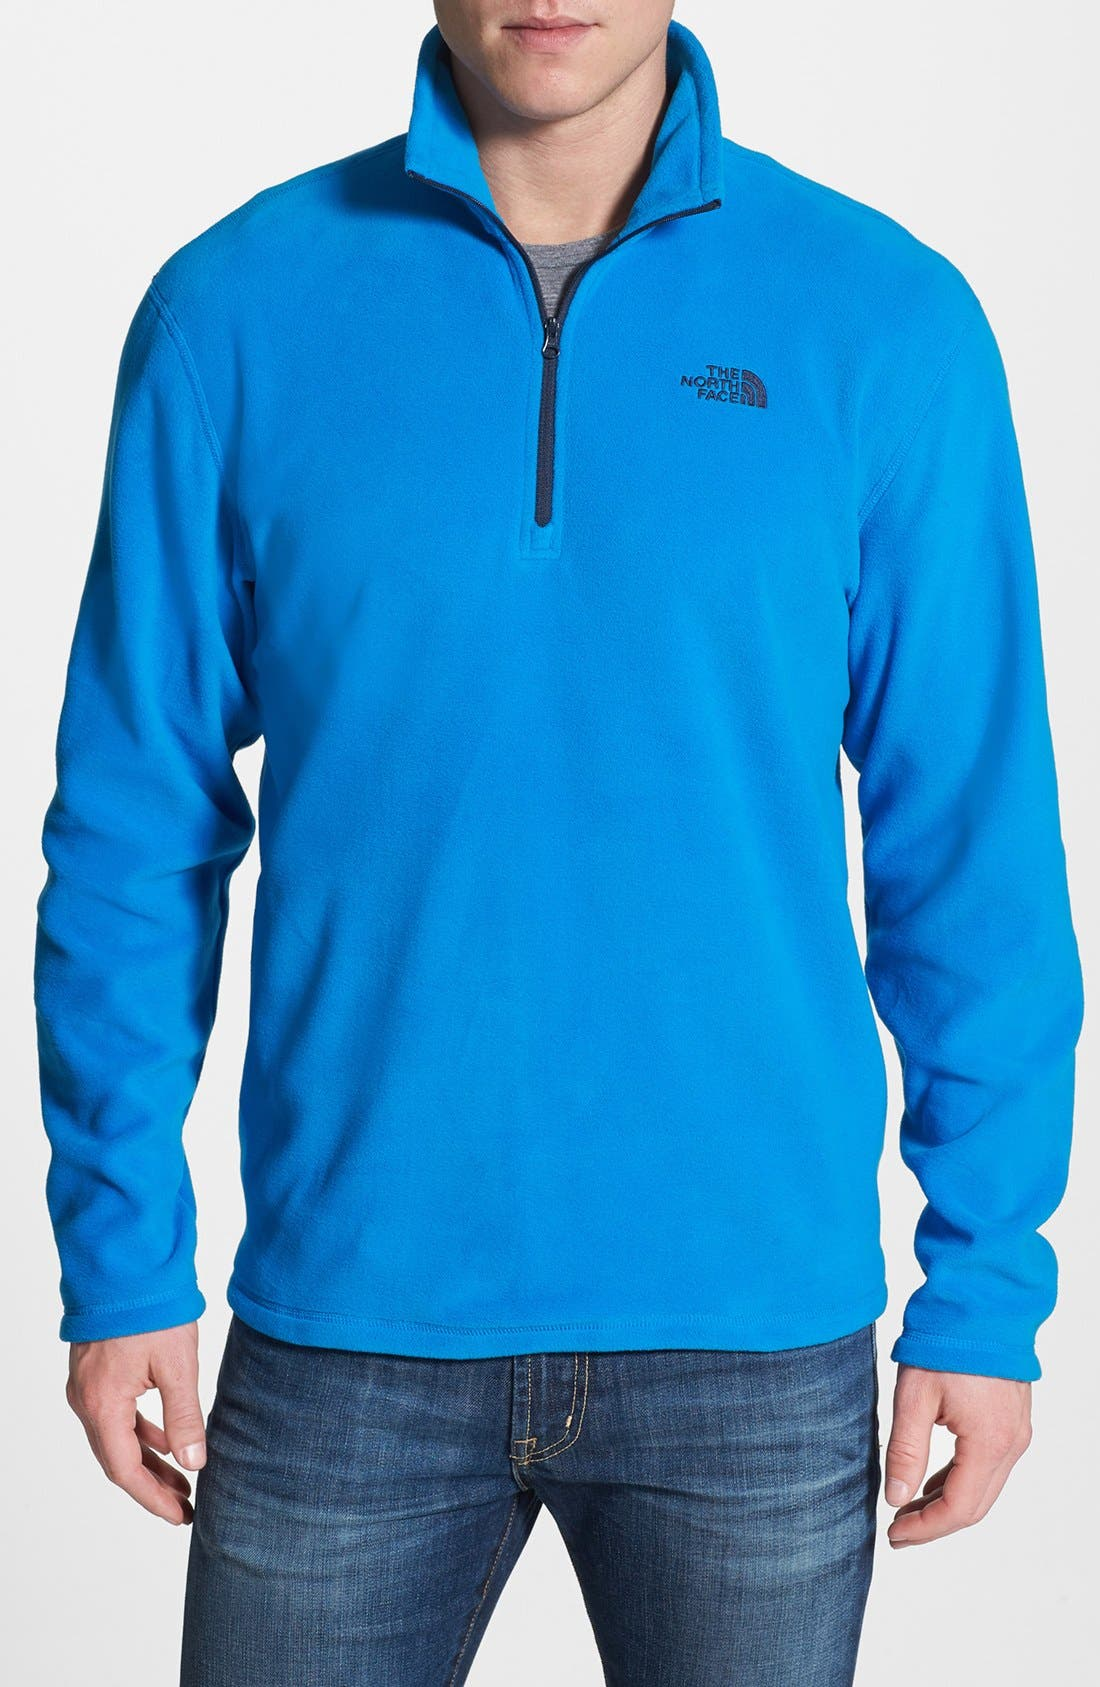 Alternate Image 1 Selected - The North Face 'TKA 100 Microvelour Glacier' Quarter Zip Fleece Pullover